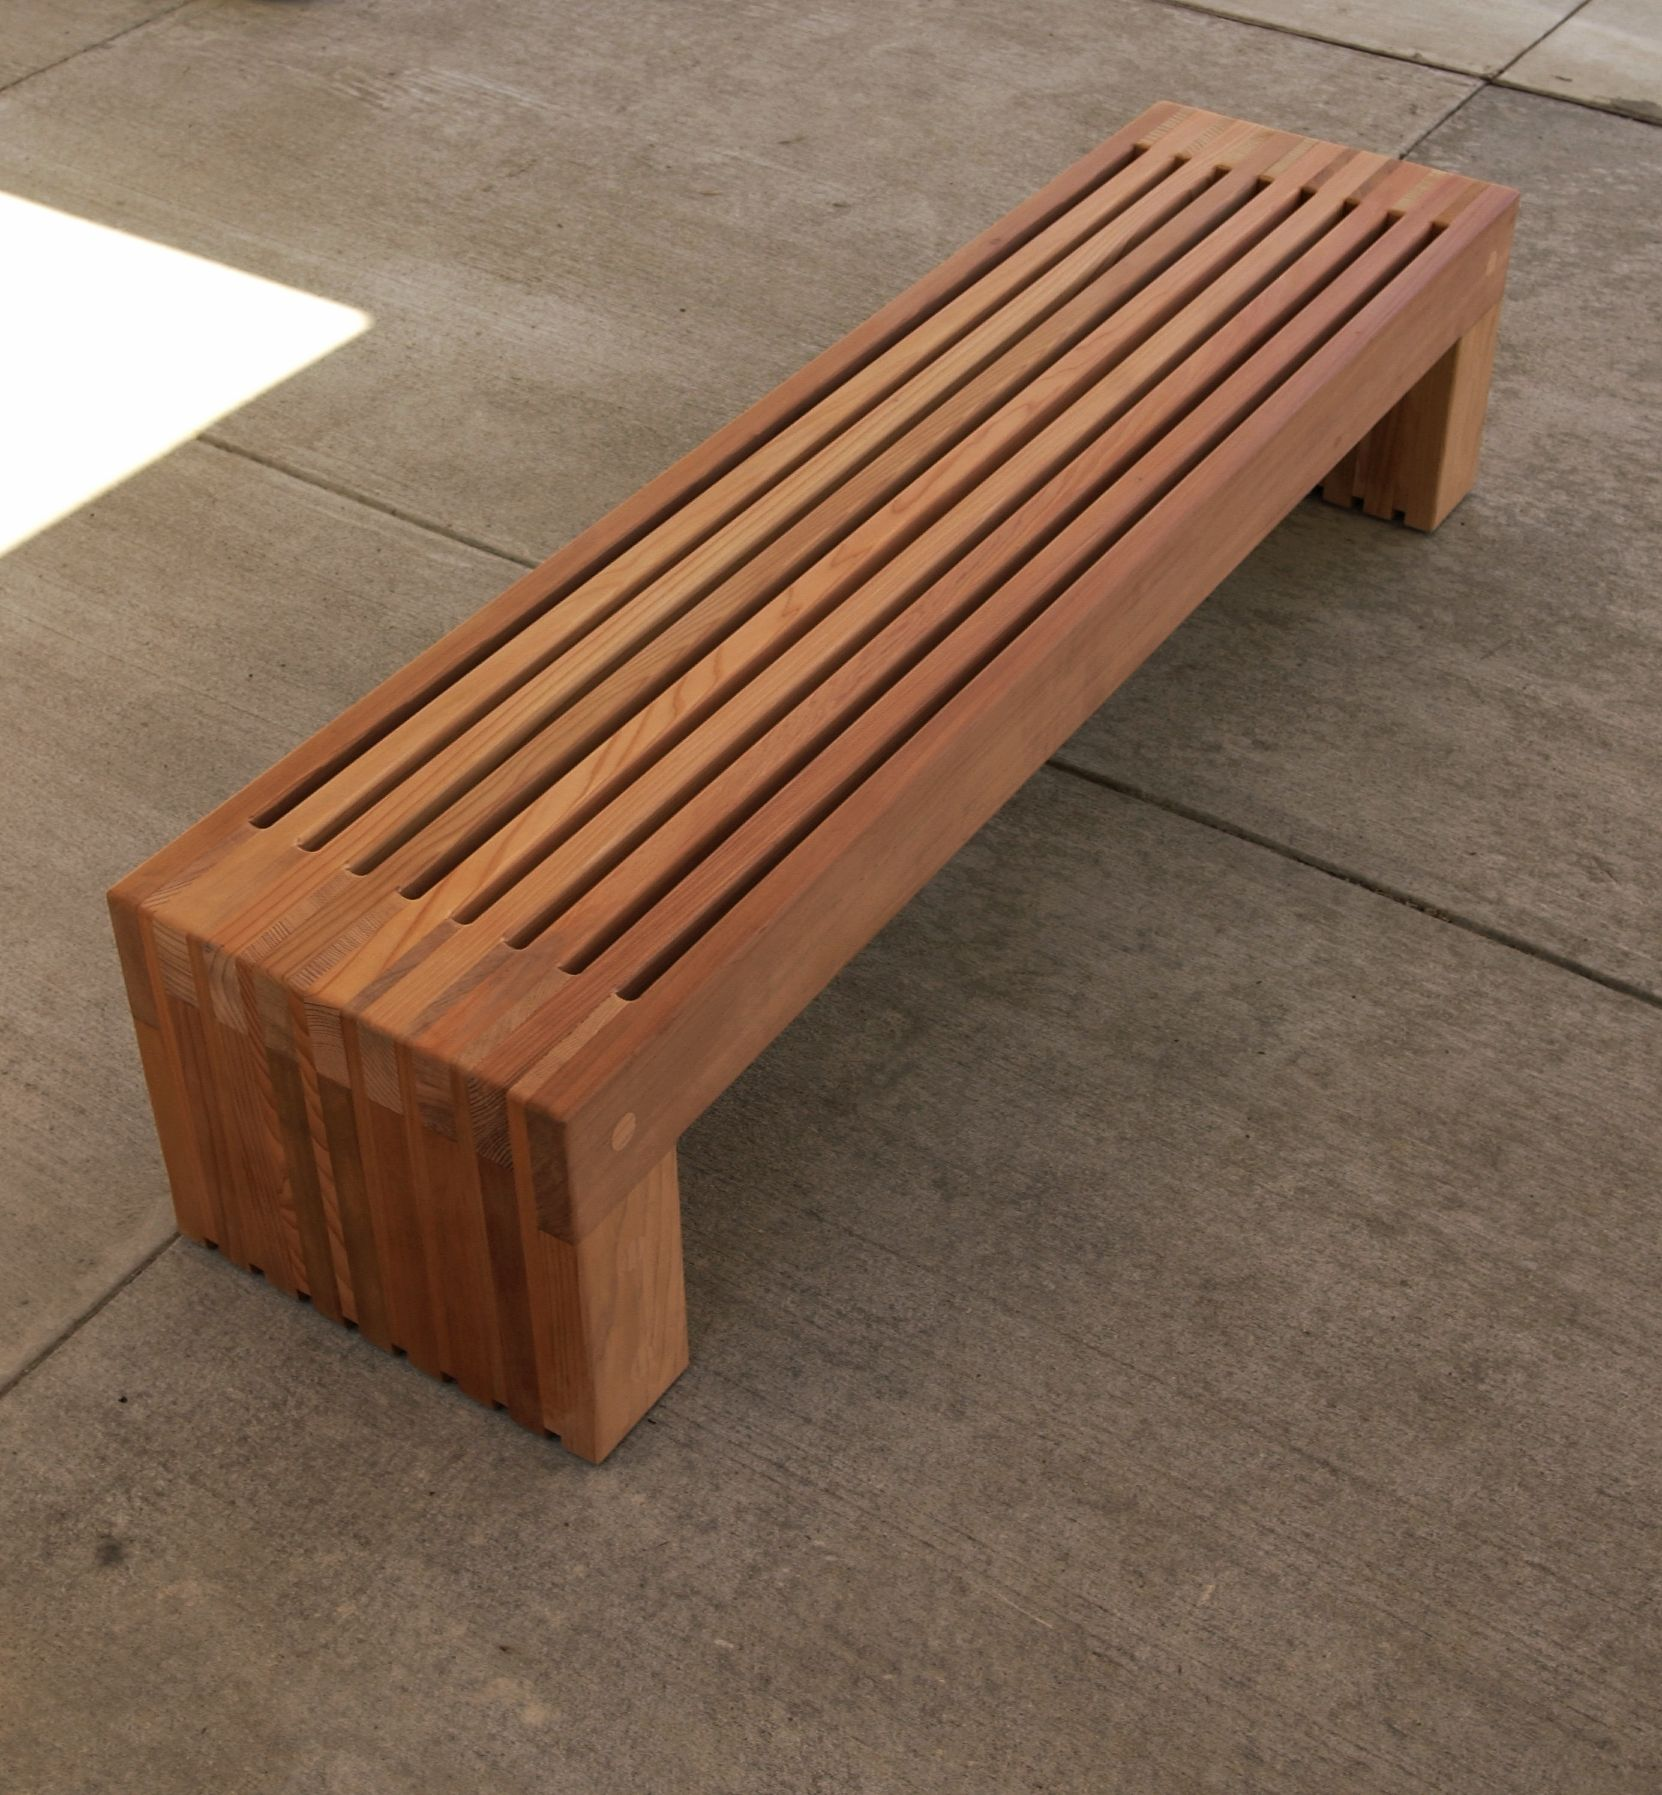 Modern log bench - Summer Is Coming So You Need A Bench Like This